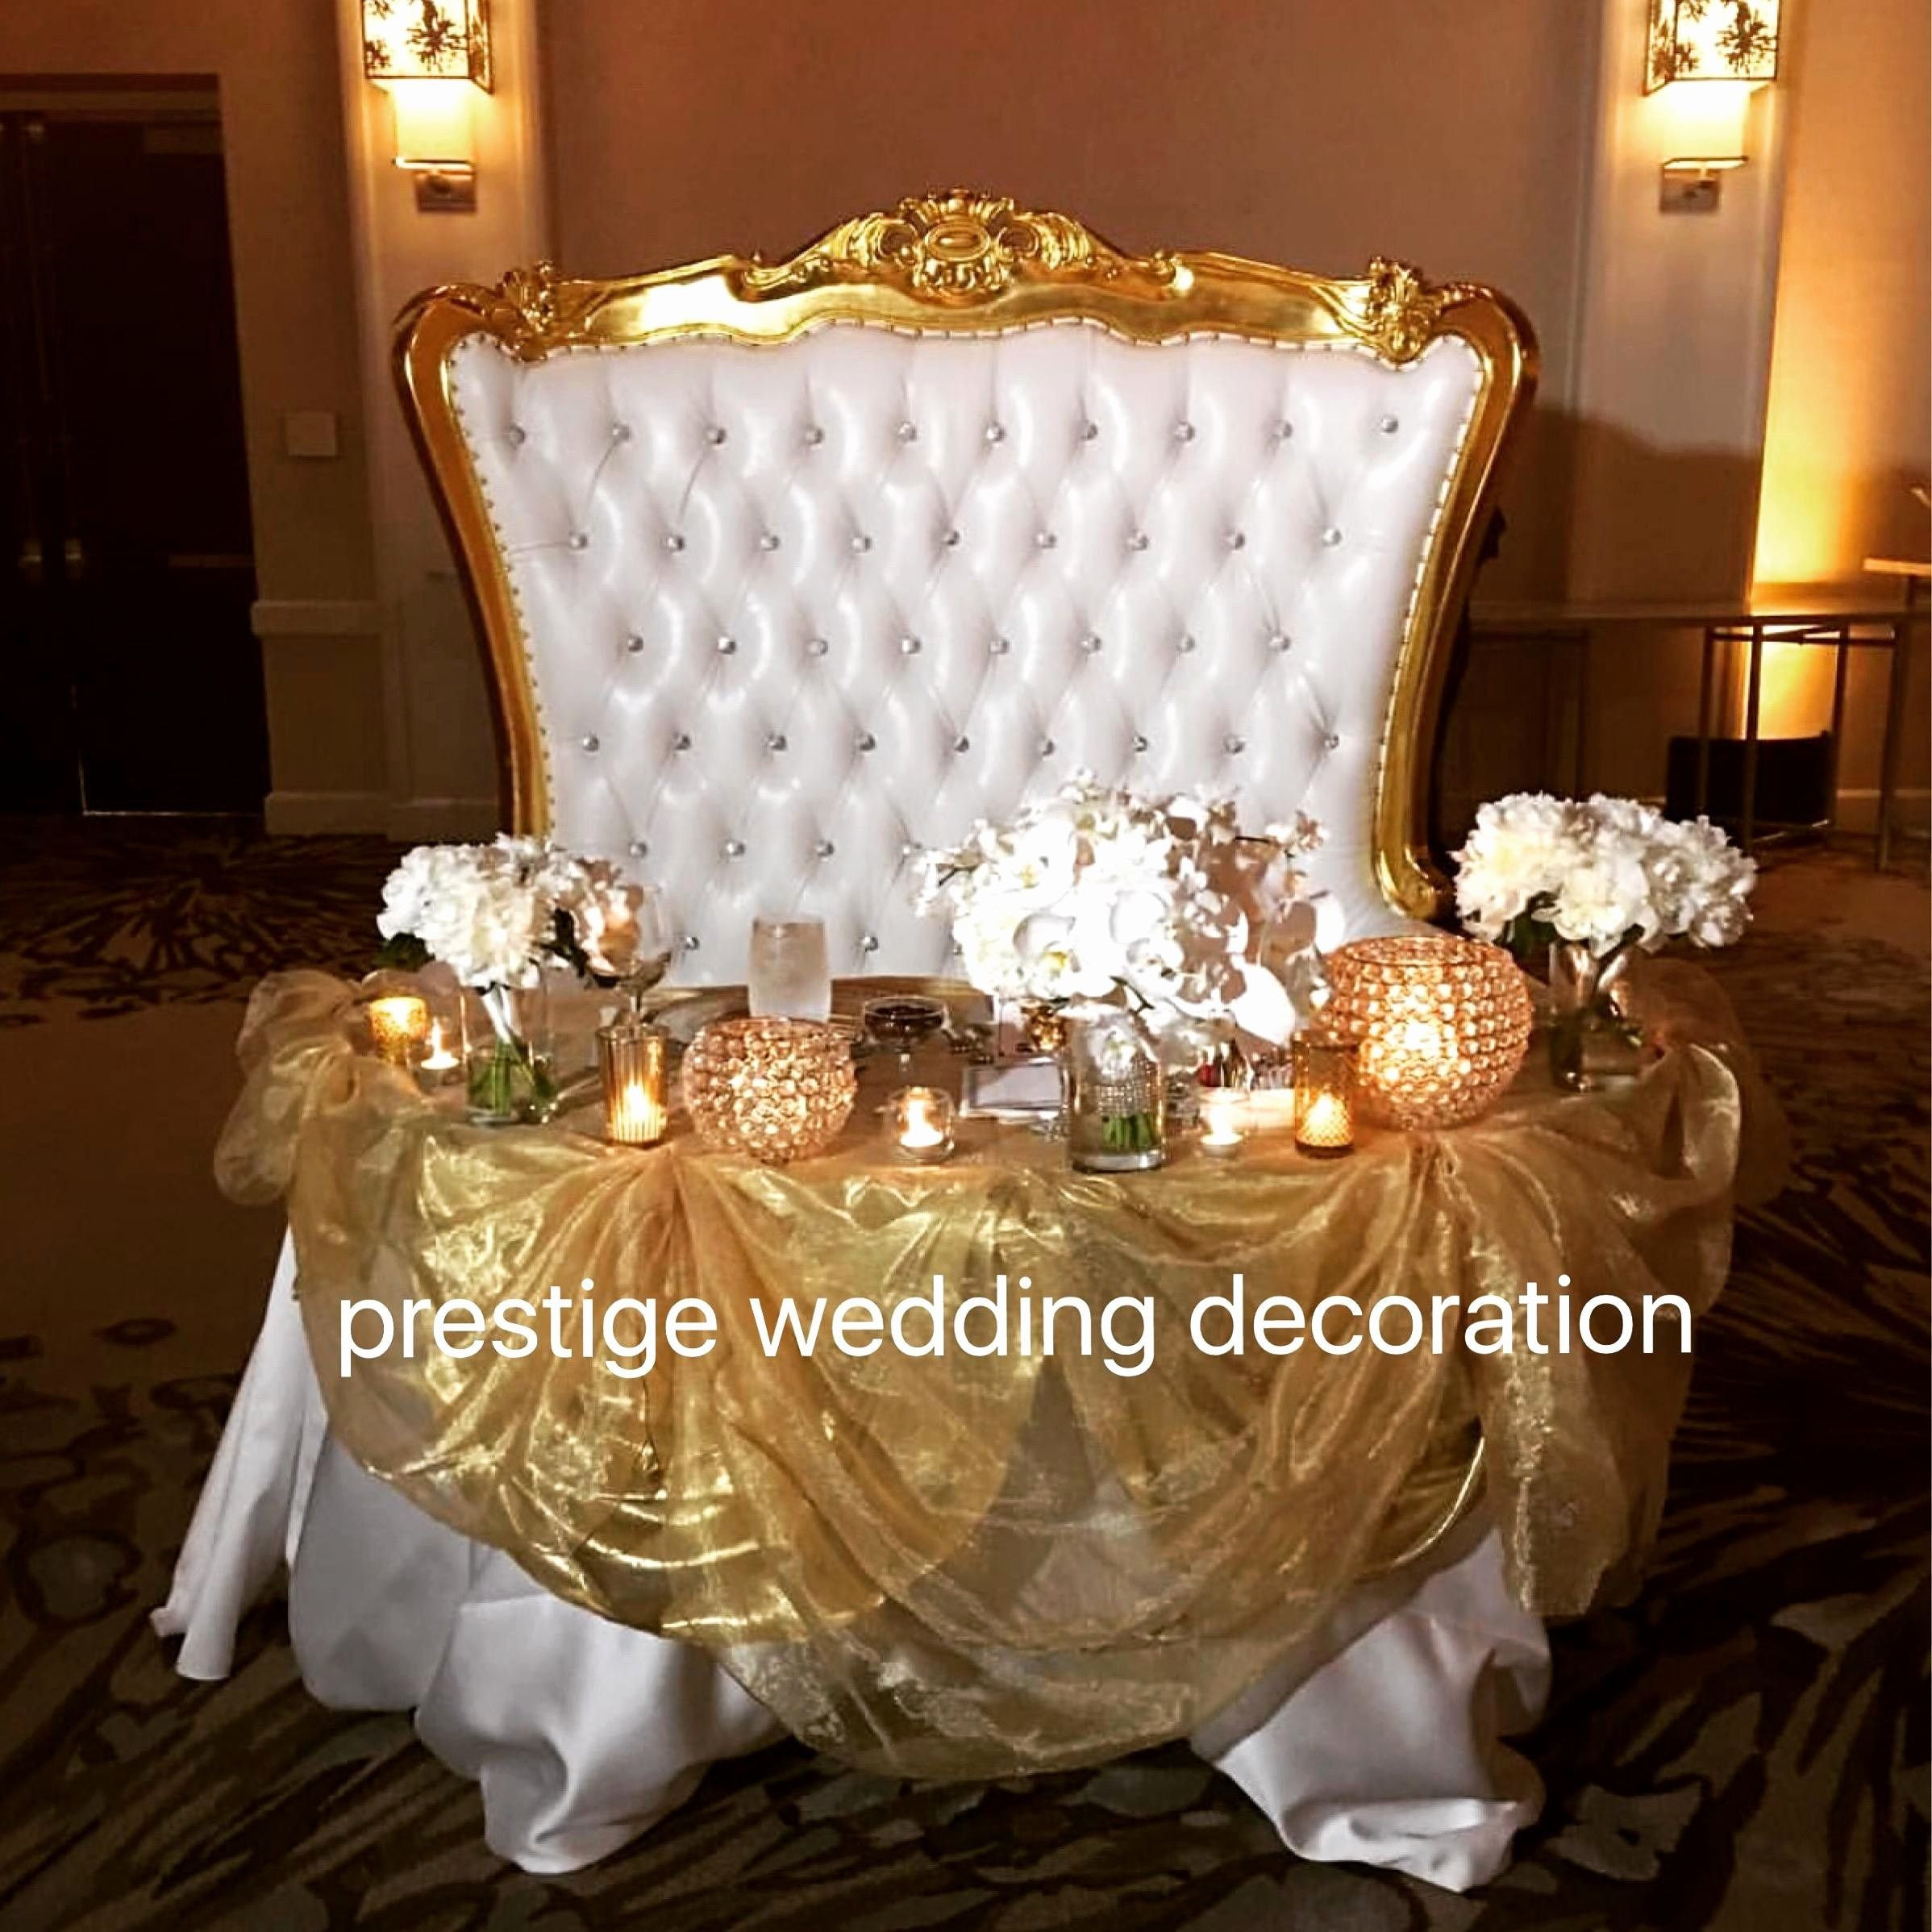 decorative glass rocks for vases of 30 pearl vase fillers the weekly world in wedding entrance ideas elegant wedding decor by q events wedding